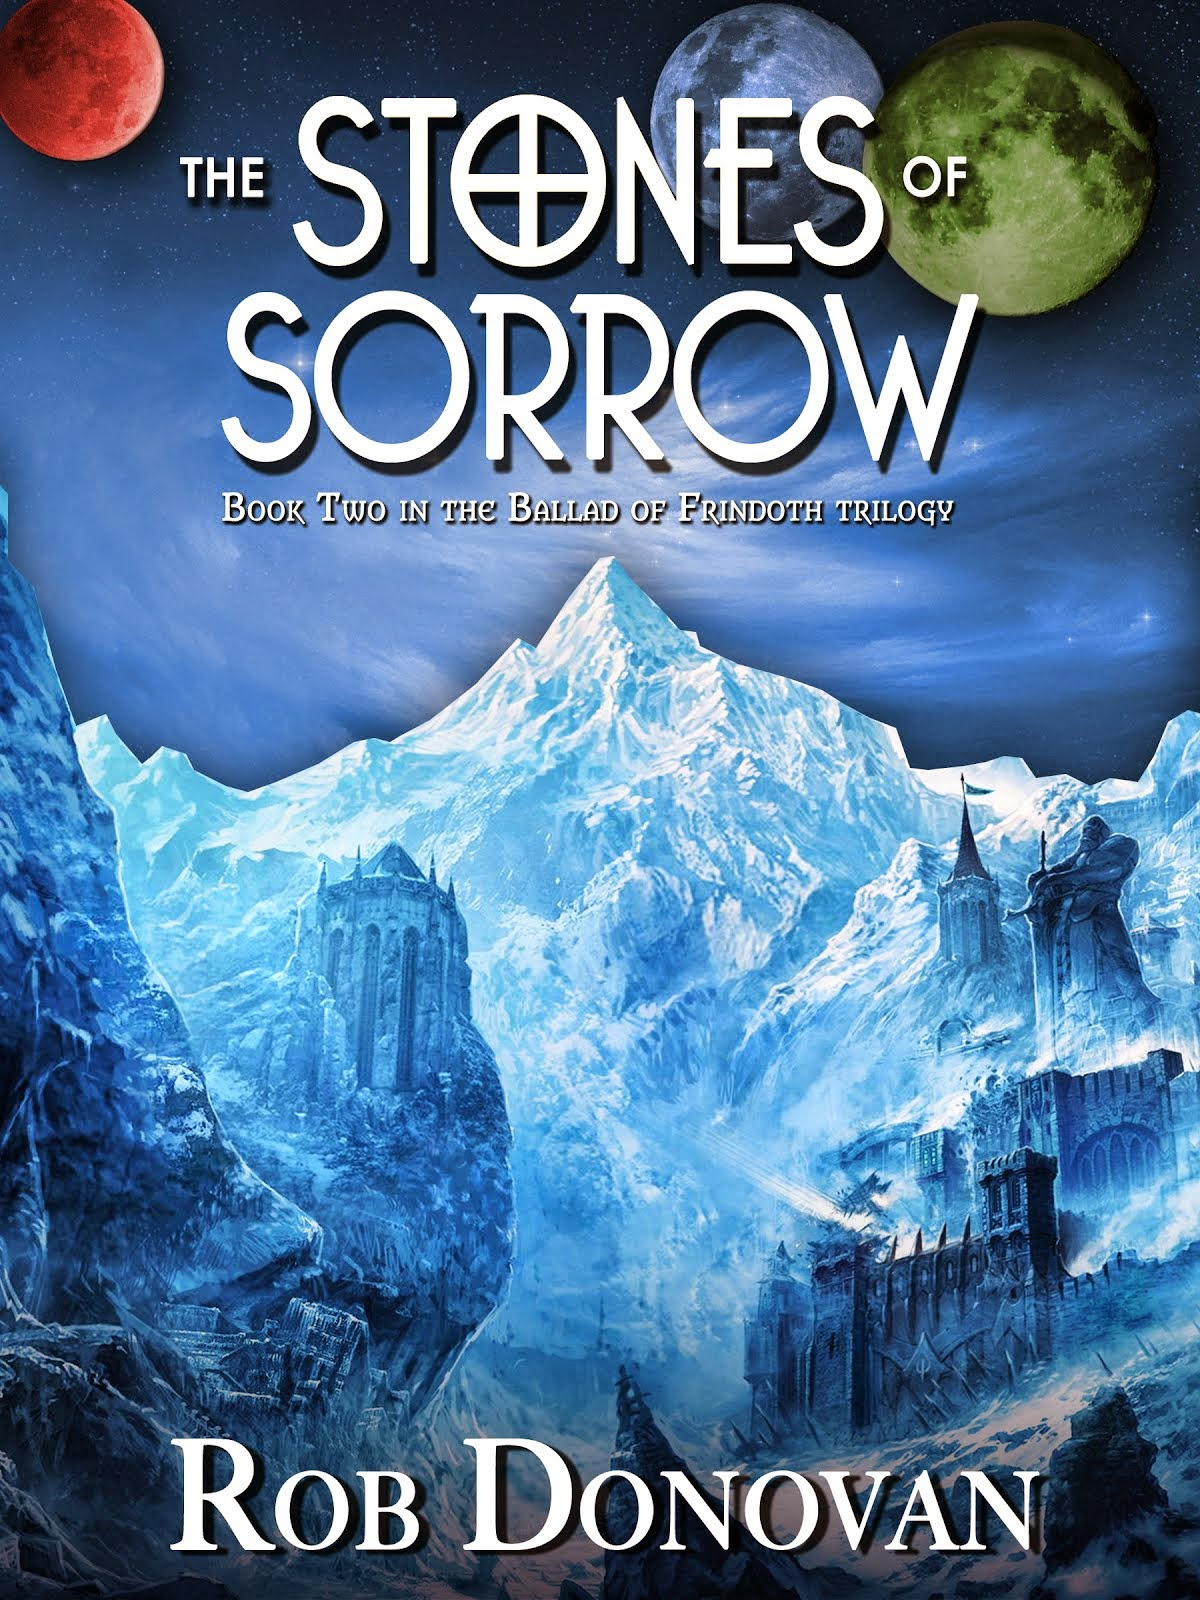 The Stones of Sorrow